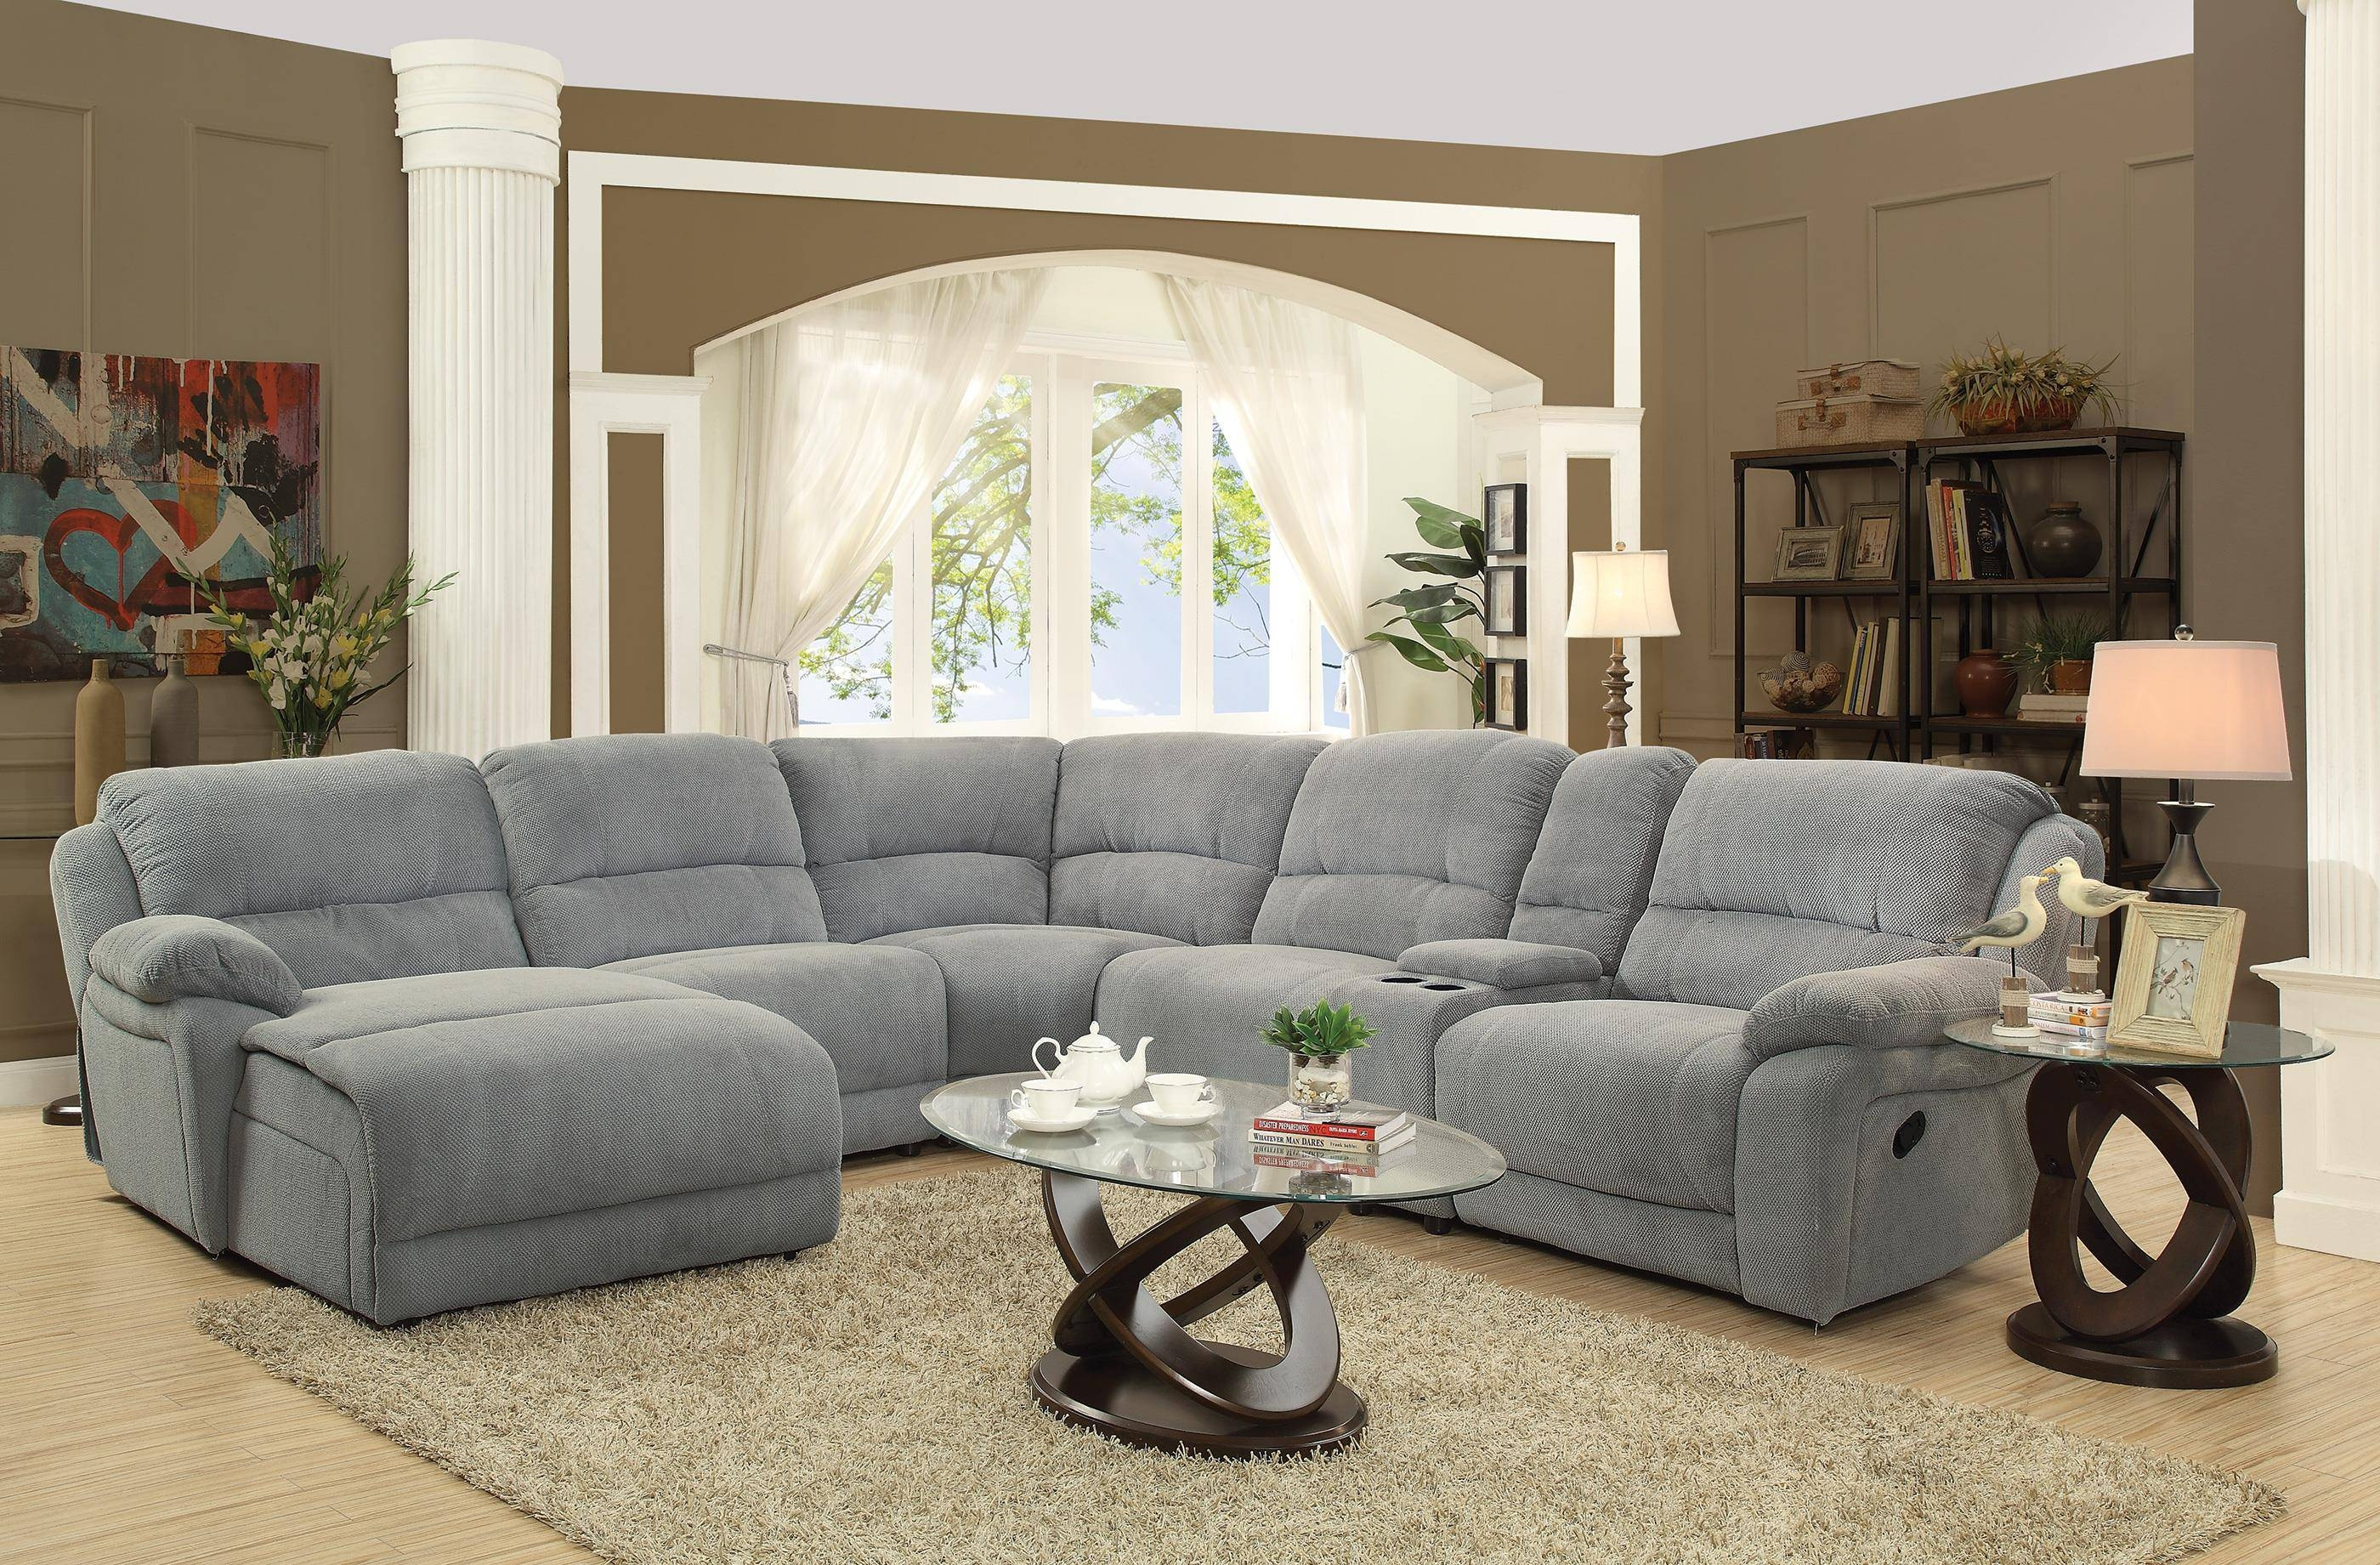 Coaster Mackenzie Silver 6-Piece Reclining Sectional Sofa With regarding 6 Piece Leather Sectional Sofa (Image 13 of 30)